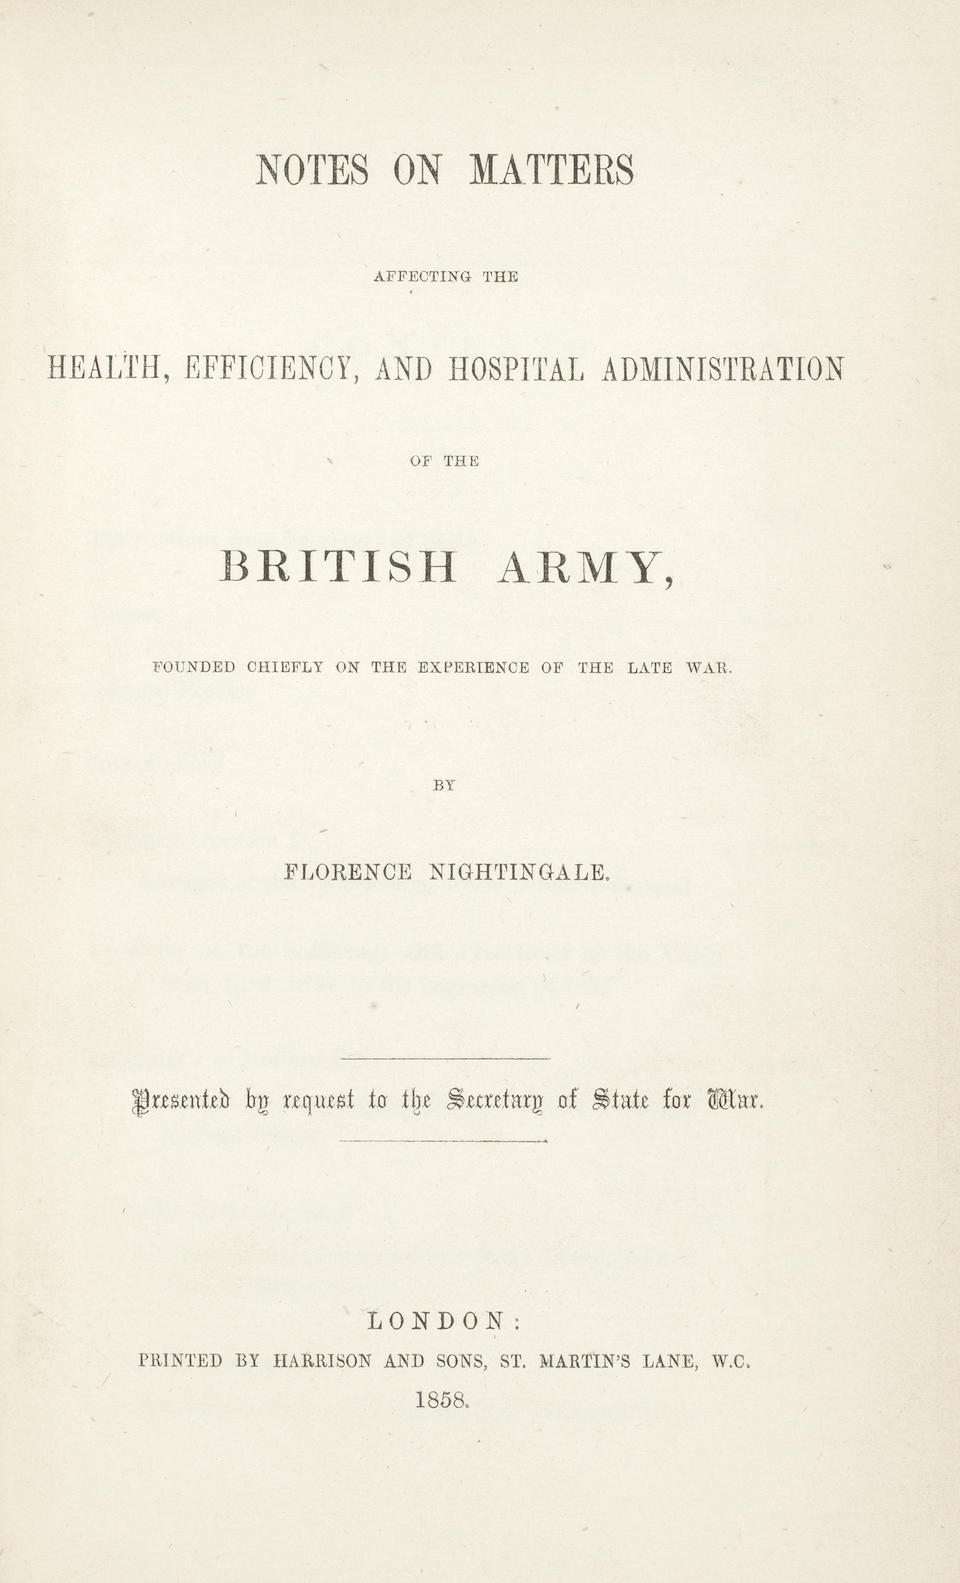 NIGHTINGALE (FLORENCE) Notes on Matters Affecting the Health, Efficiency, and Hospital Administration of the British Army, FIRST EDITION, AUTHOR'S PRESENTATION COPY, WITH AN AUTOGRAPH LETTER SIGNED, Printed by Harrison & Sons, 1858